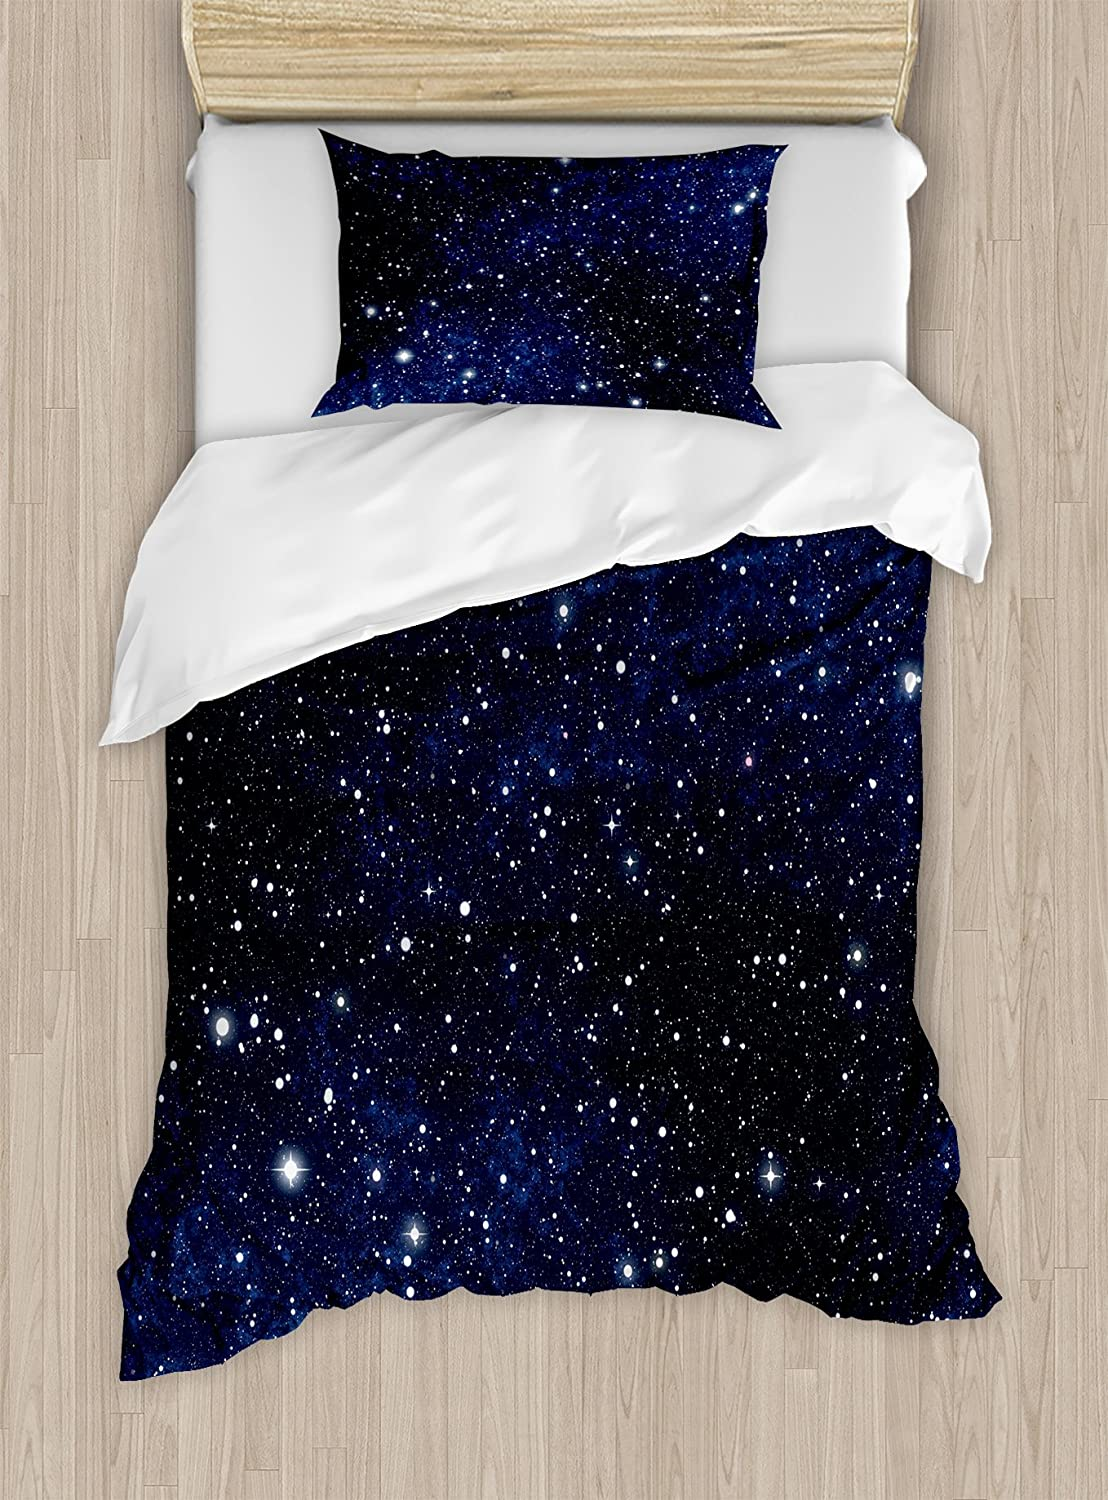 Ambesonne Night Duvet Cover Set, Composition with Dots Night Sky Theme Abstract Style Arrangement Cosmos Concept, Decorative 2 Piece Bedding Set with 1 Pillow Sham, Twin Size, Dark Blue